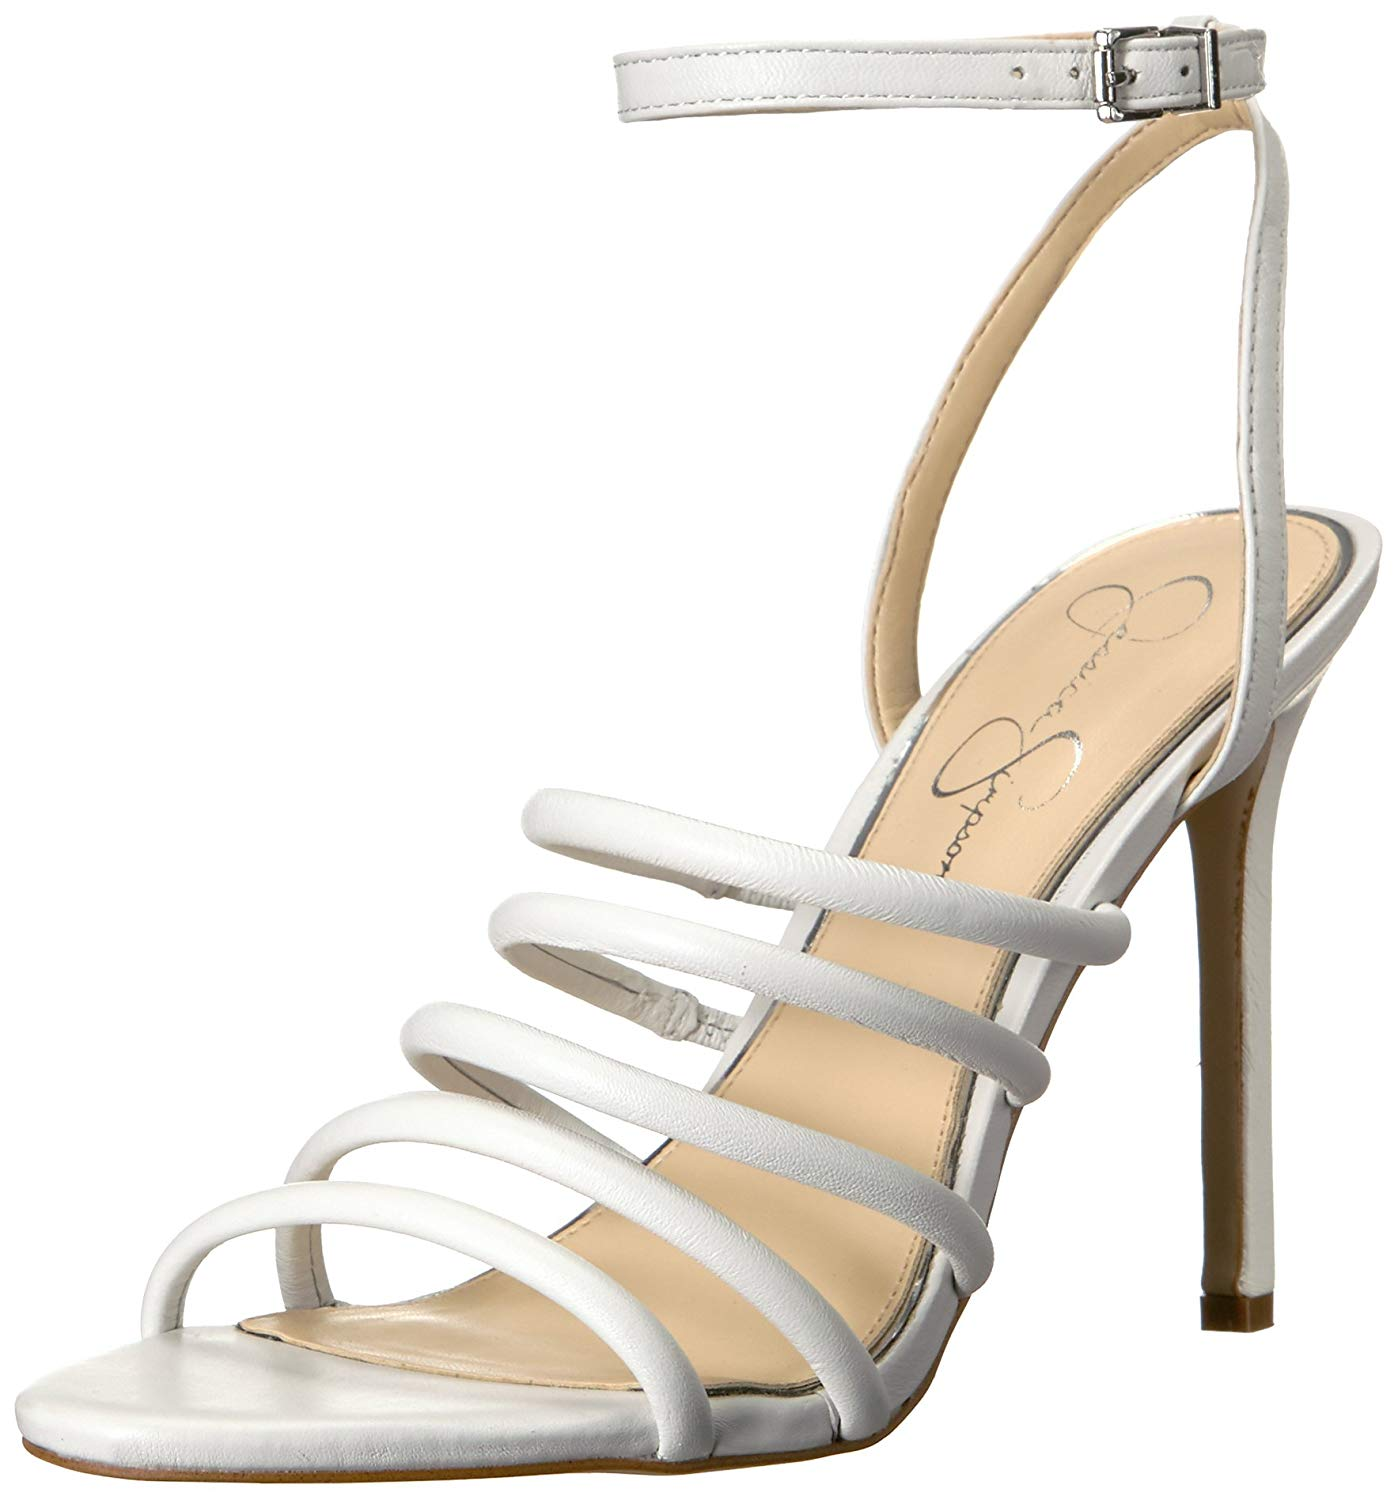 Jessica Simpson Women's Joselle, Bright White, Size 11.0 NgoP US   9 UK